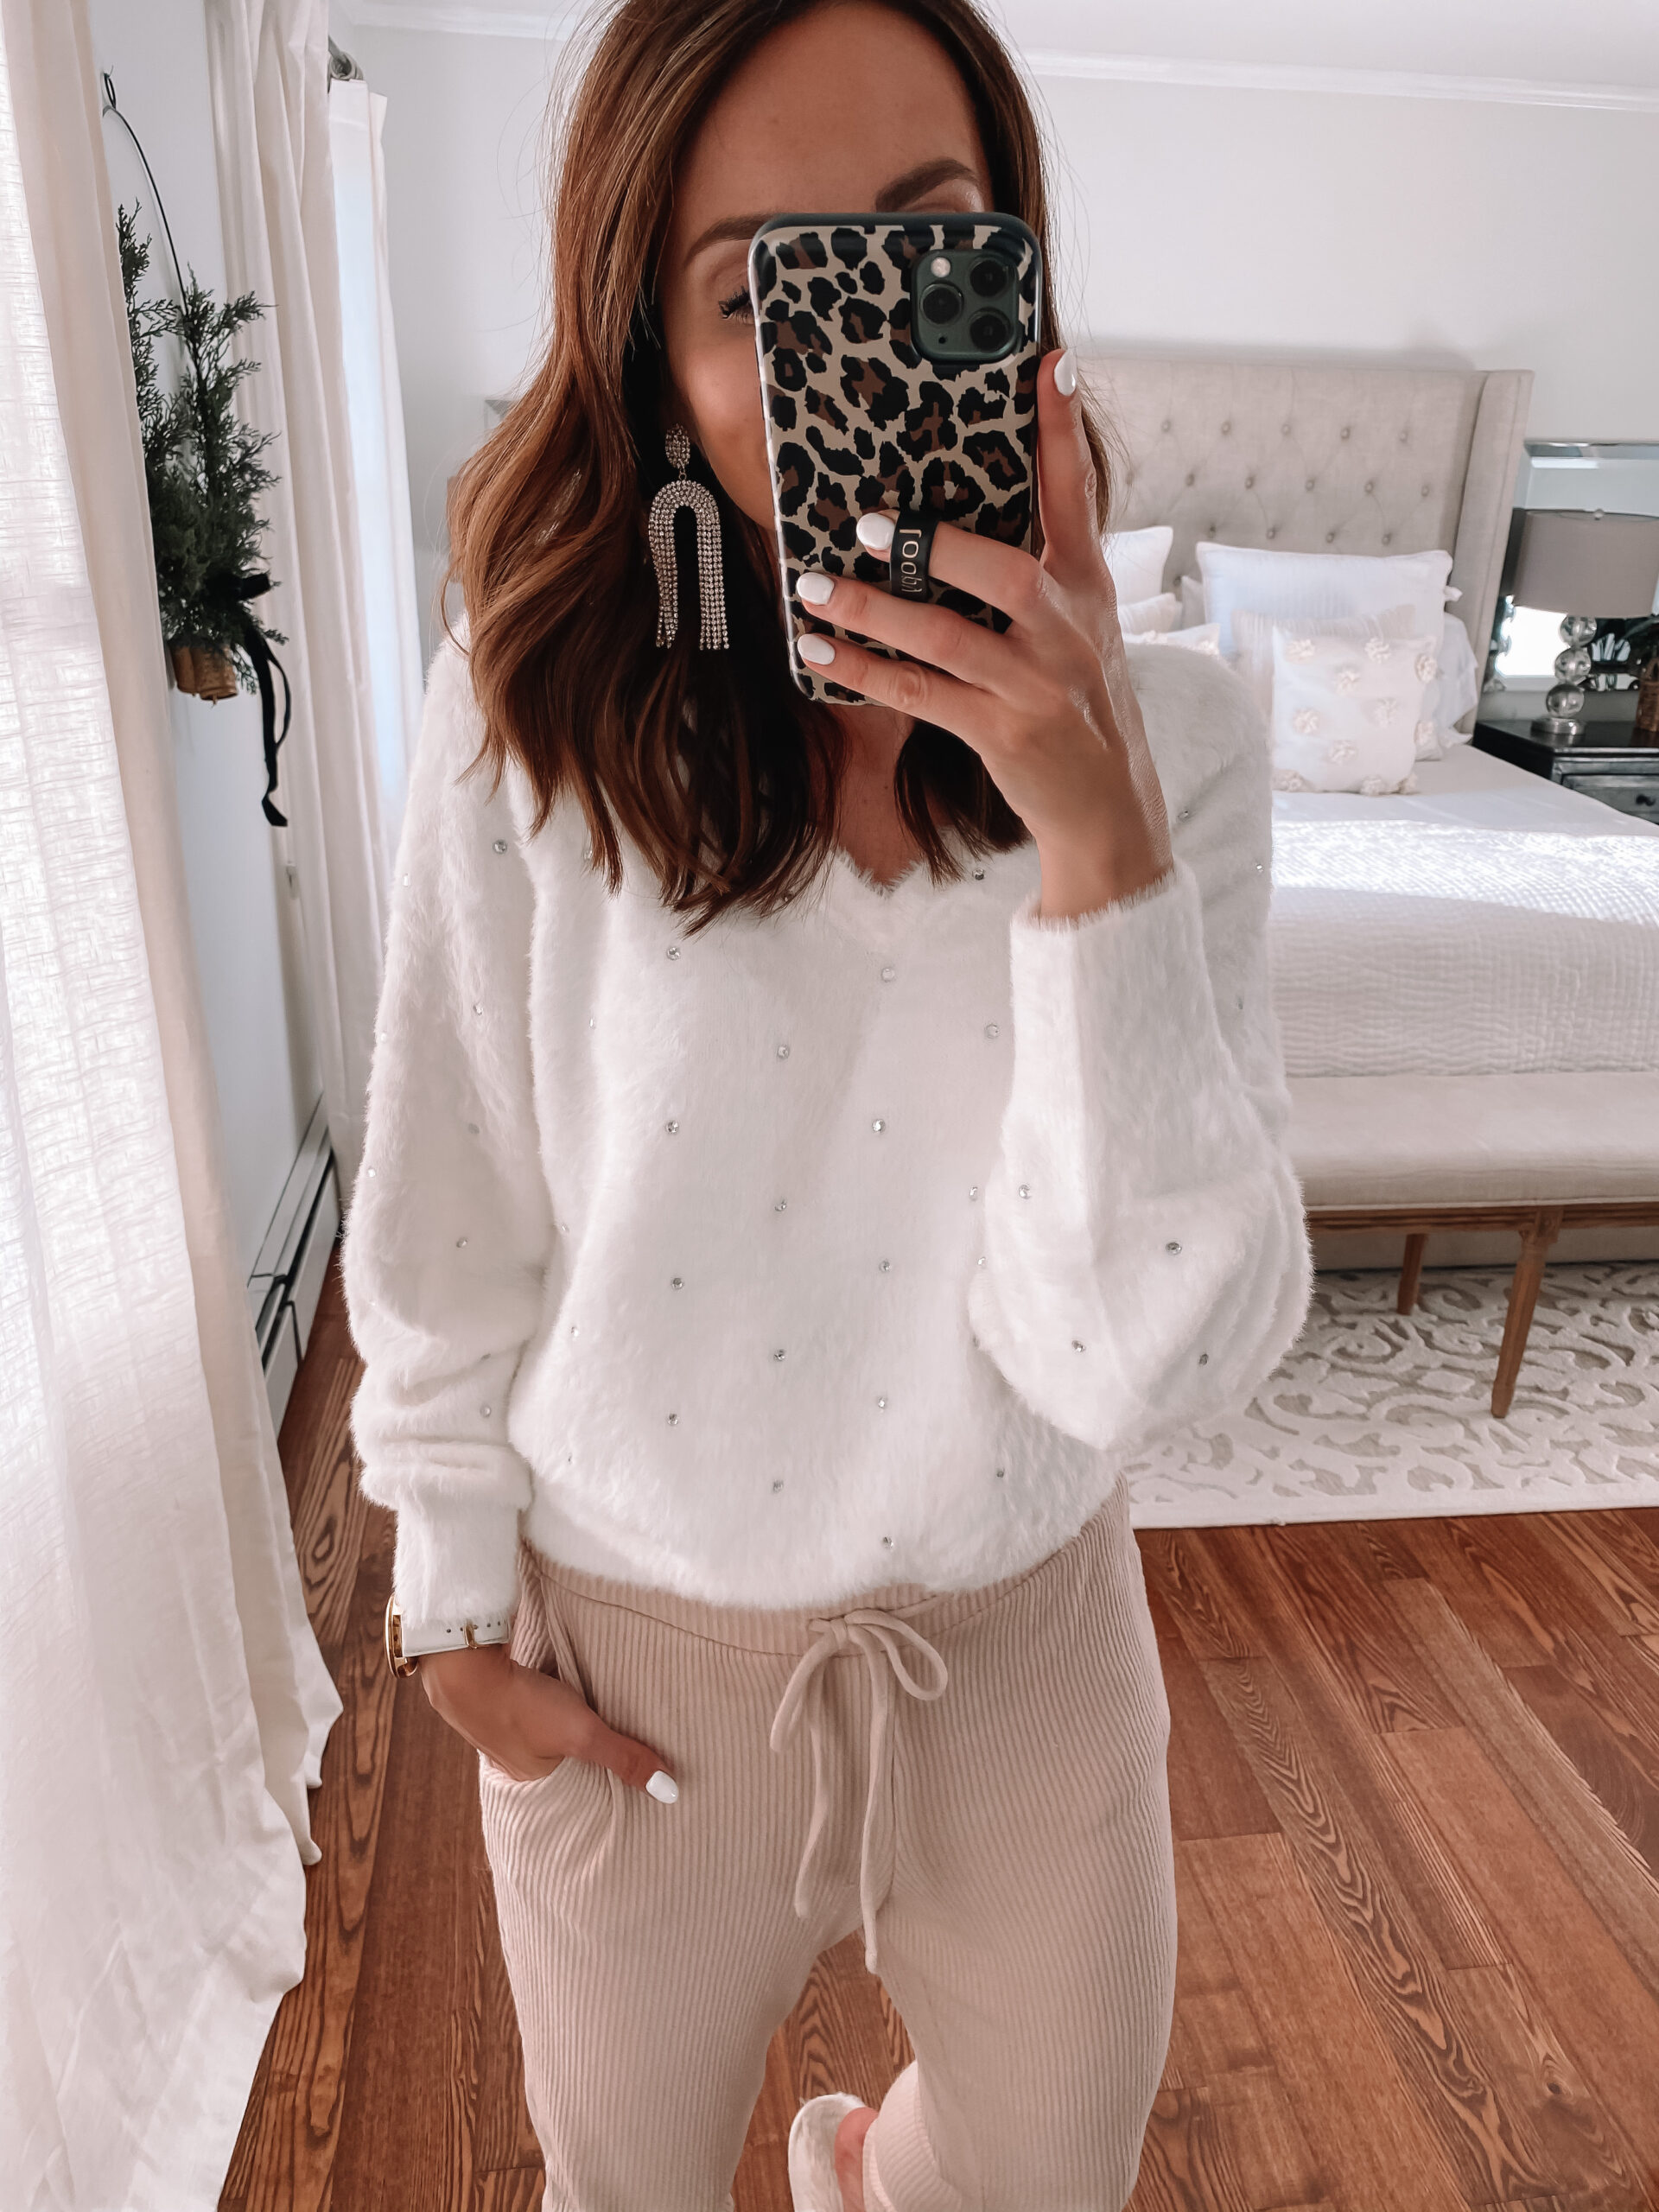 express white sweater, express loungewear